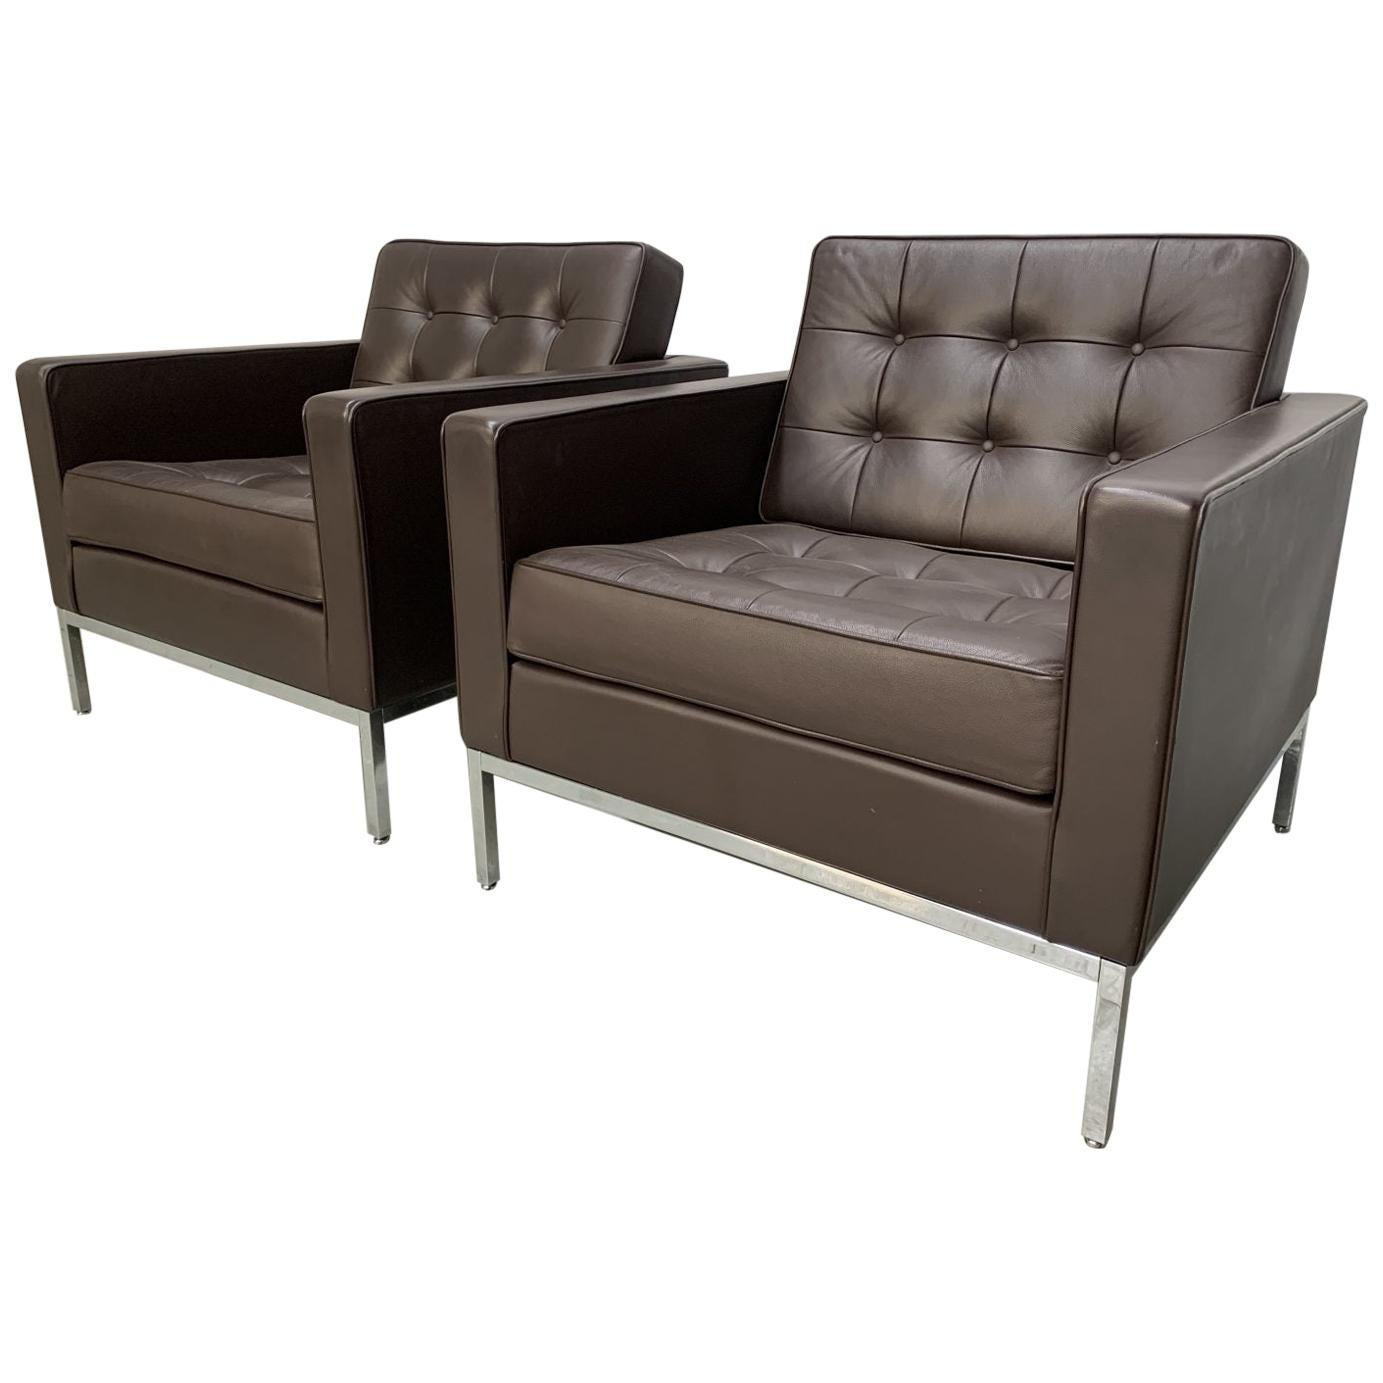 """Pair of Knoll Studio """"Florence Knoll"""" Lounge Chairs in """"Sabrina"""" Brown Leather"""